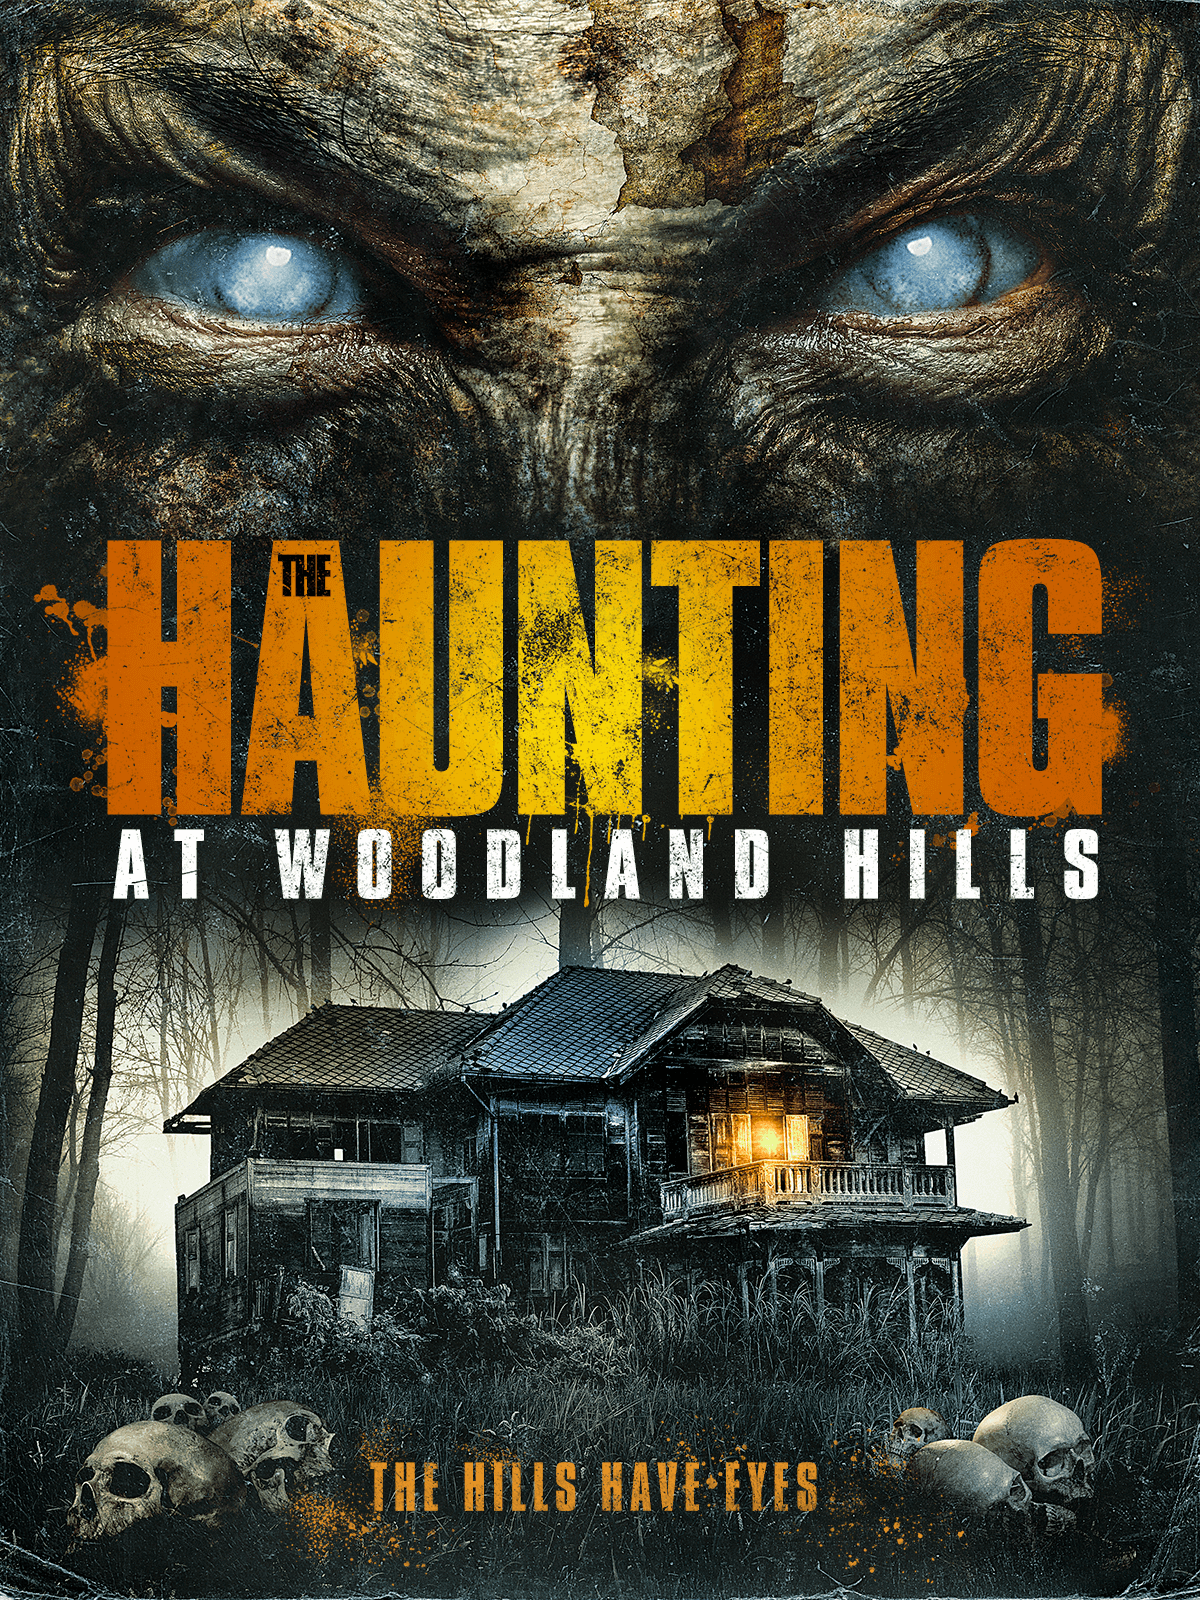 The Haunting of Woodland Hills 1200x1600 THE HAUNTING AT WOODLAND HILLS